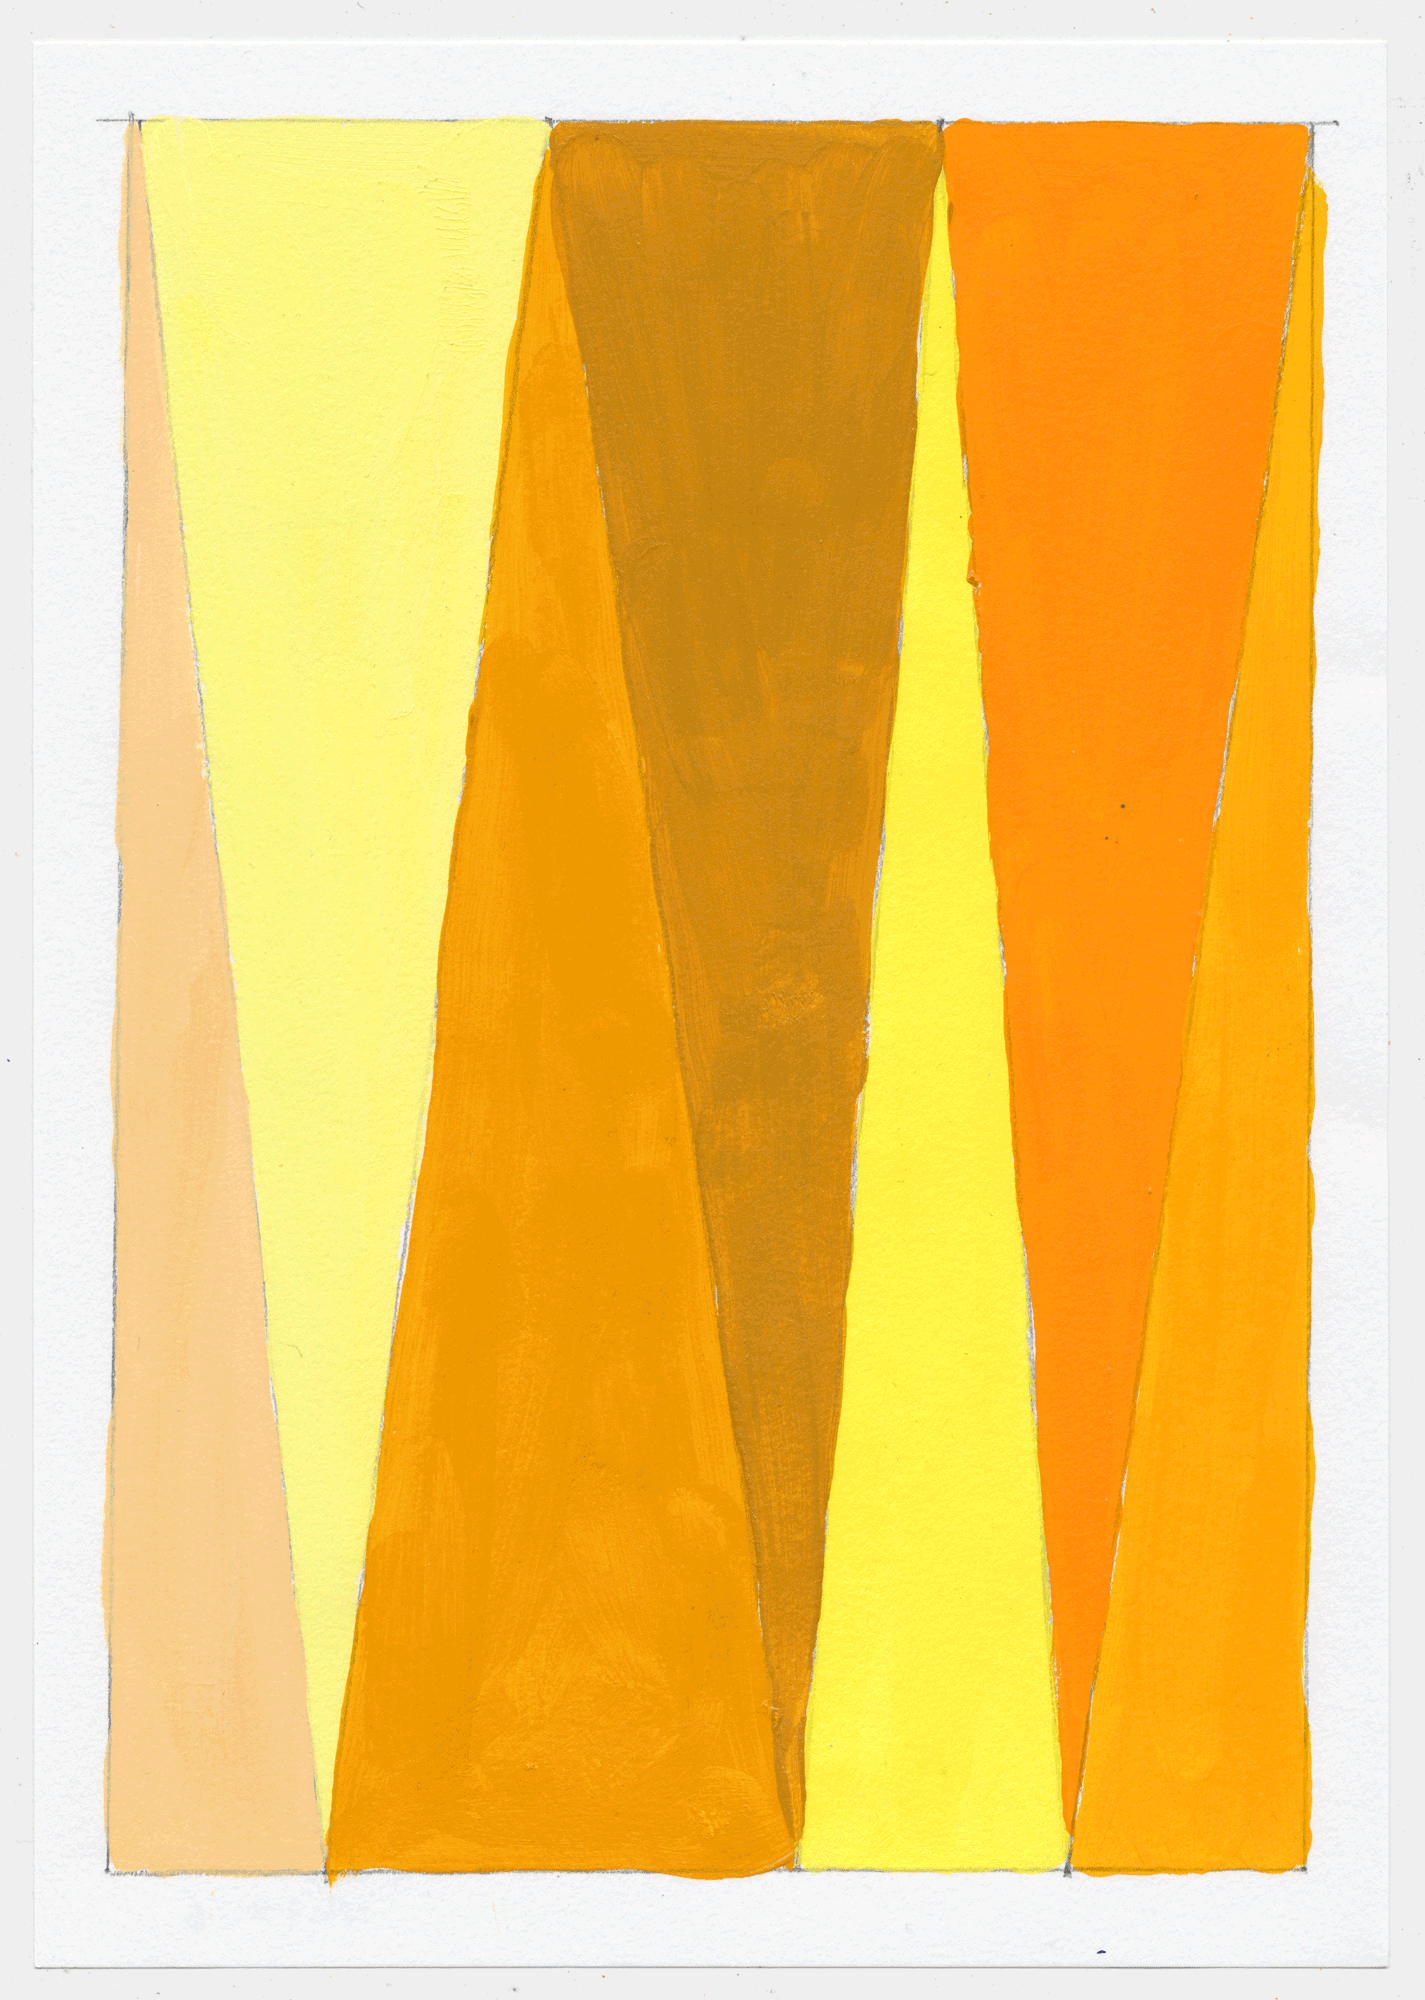 "NY17#26 10"" X 7"", acrylic on paper, 2017  available at Etsy   again with color studies! 3 sets of 3. using a primary color & its' complement to create subtle variations & muted colors."